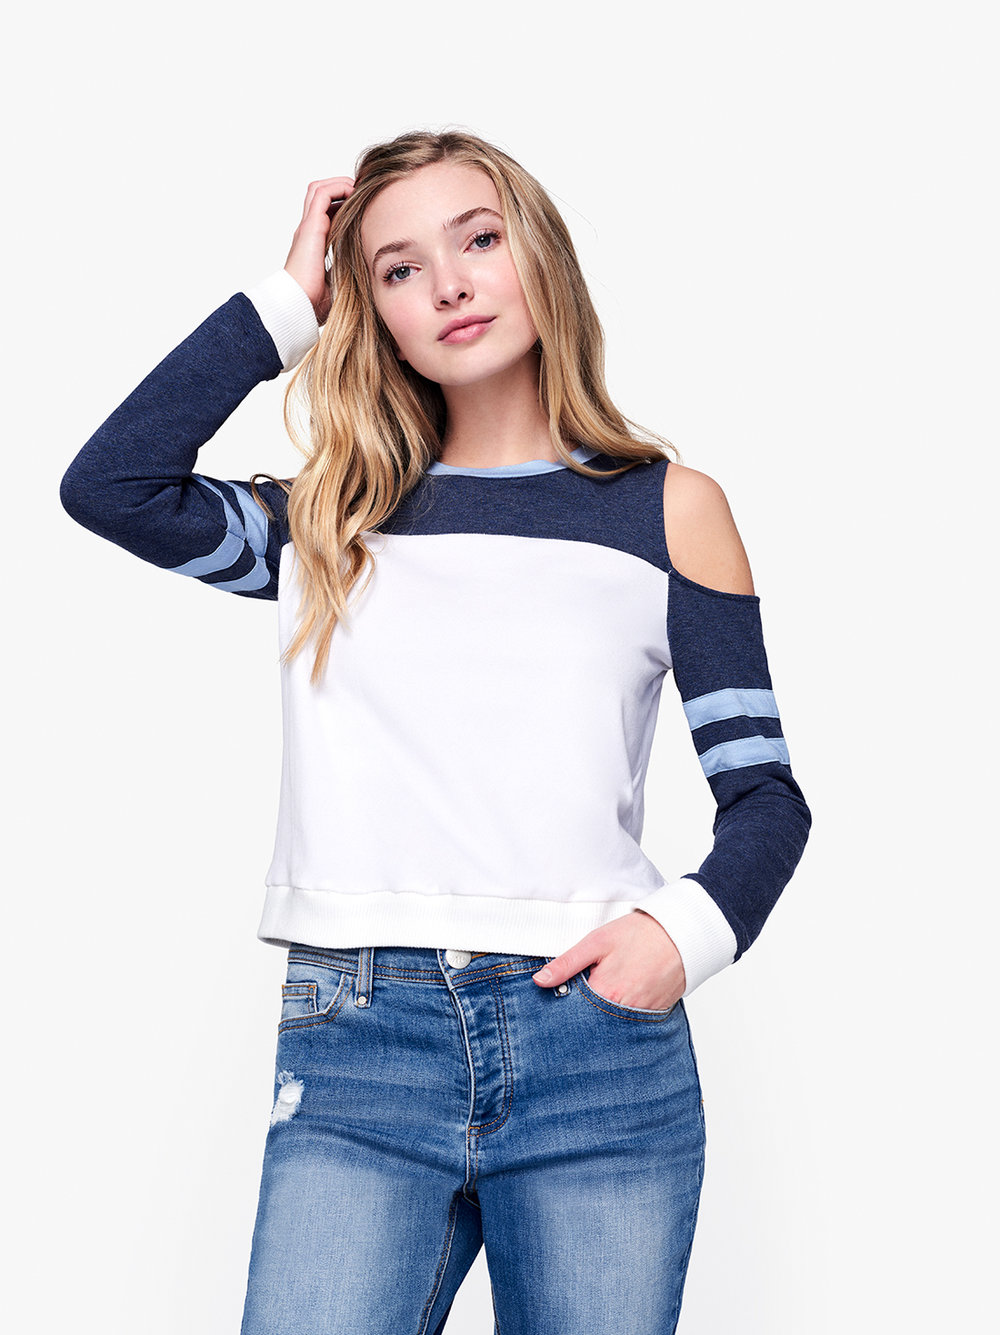 1186939 - OFF THE SHOULDER BLUE RUGBY L S JERSEY_014.jpg